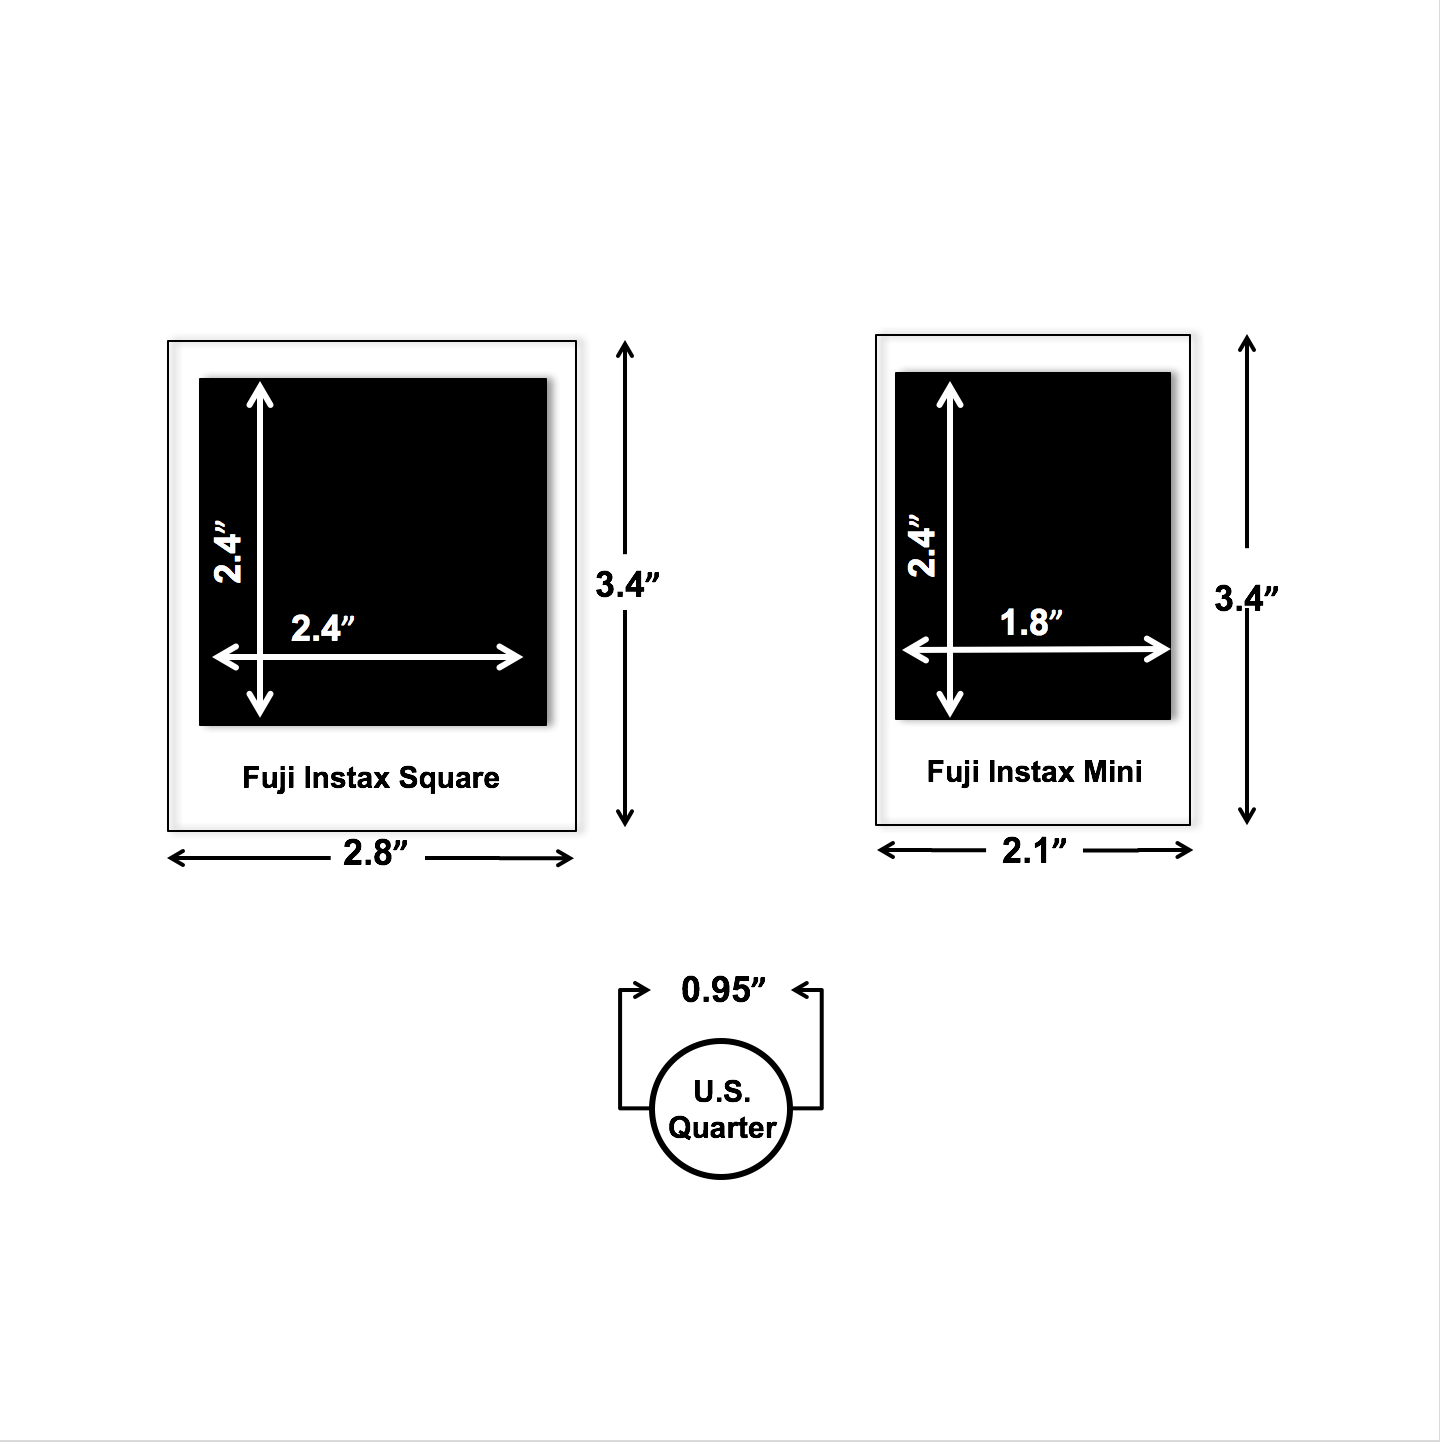 Fuji Instax Photo Size Square vs. Mini.